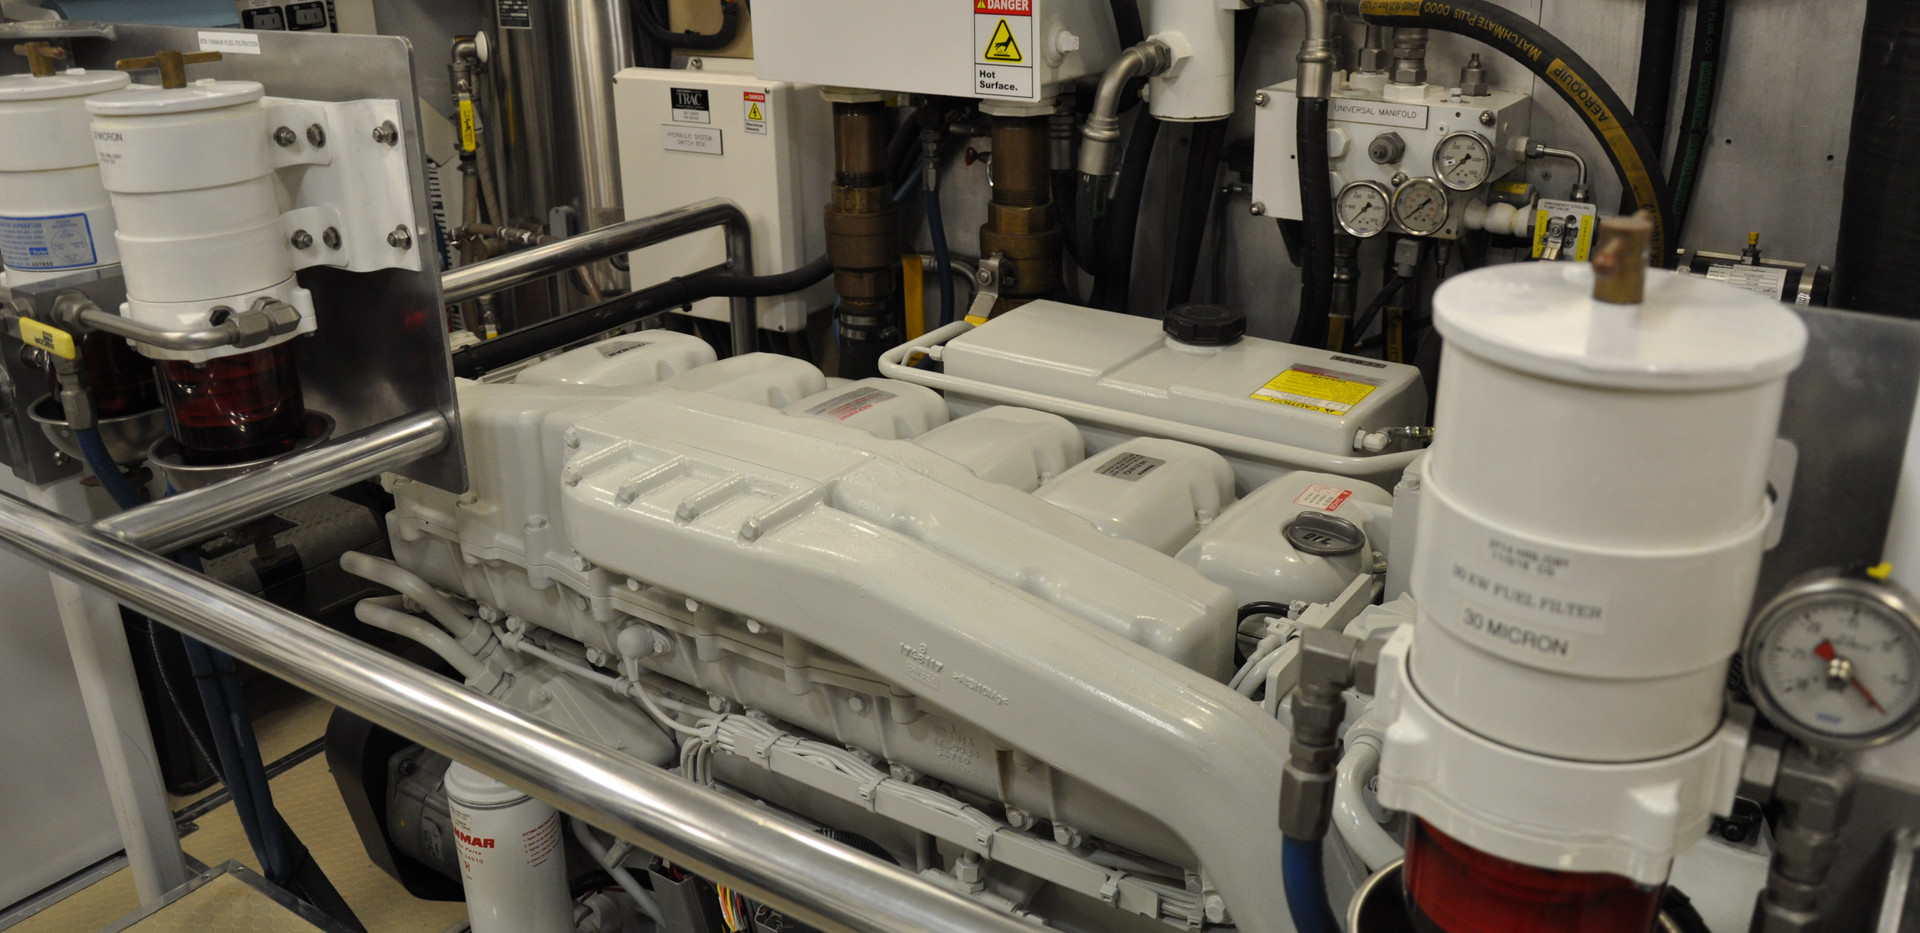 """New engine room on Snowbird 73, """"Retired Sailor III"""", after repowering with new engines and refitting with new upgraded systems."""